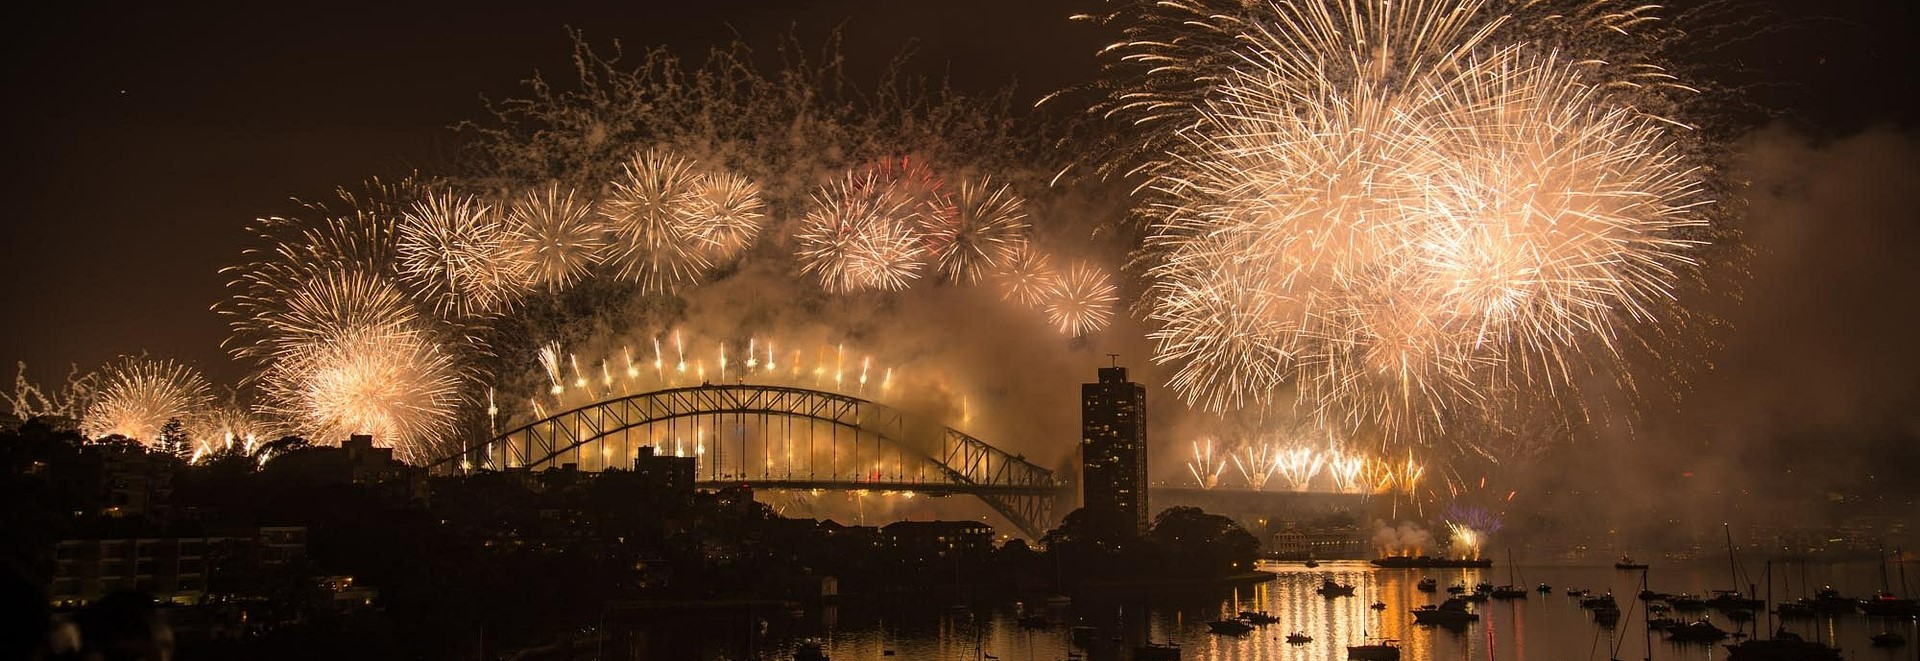 Fireworks Display this New Years Eve   Breast Cancer Car Donations